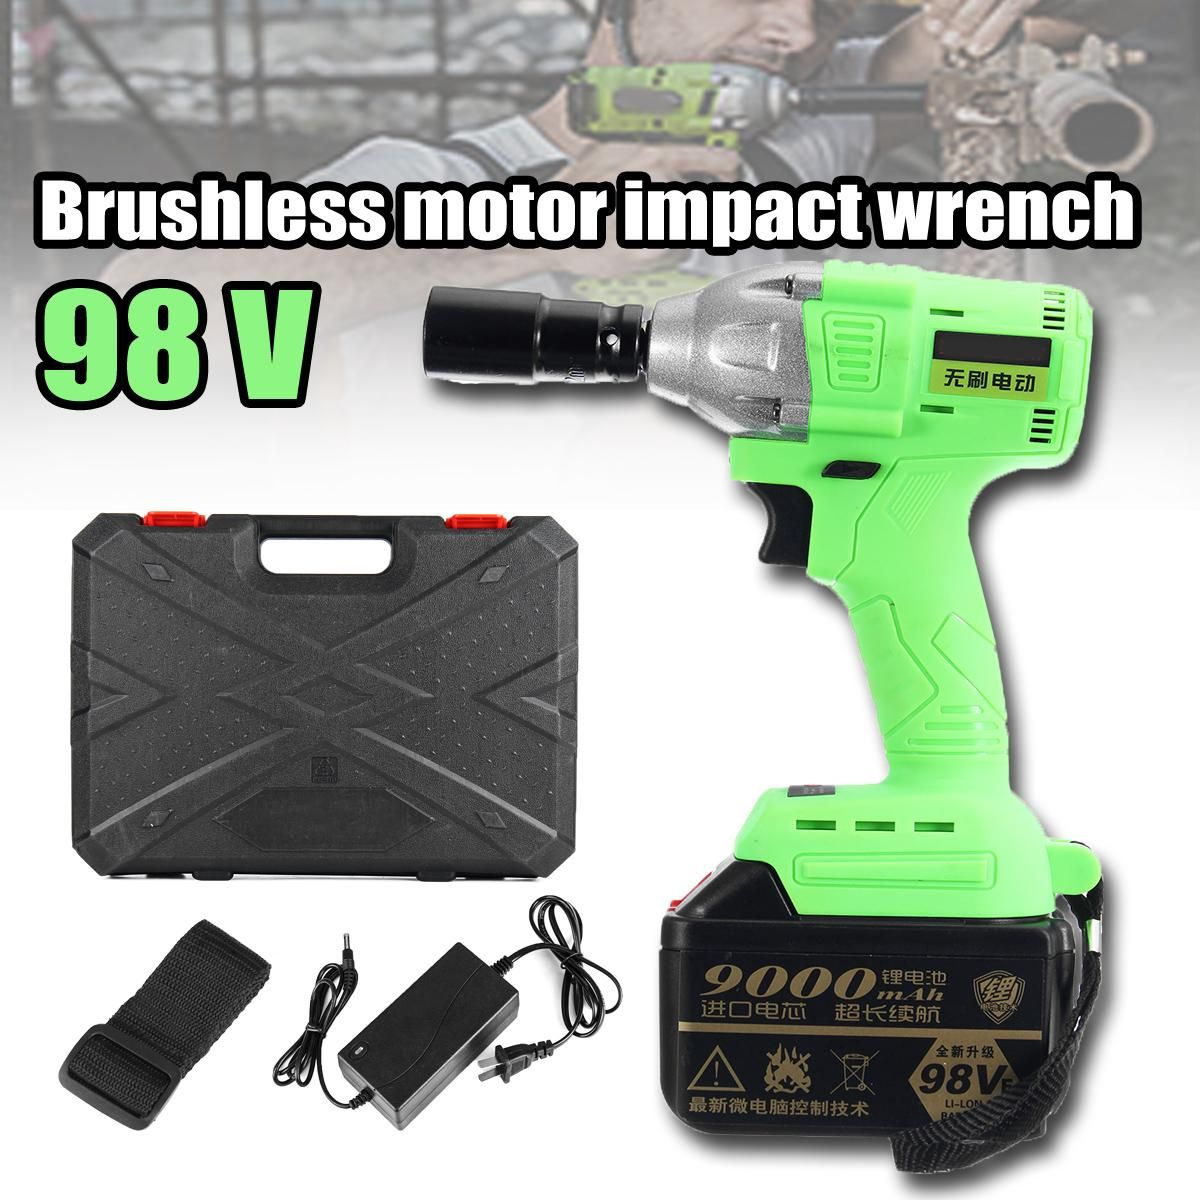 1Set 98V Cordless High Torque Lithium-Ion Brushless motor Electric Impact Wrench 3 Speed Torque 520 3200r/min Nm